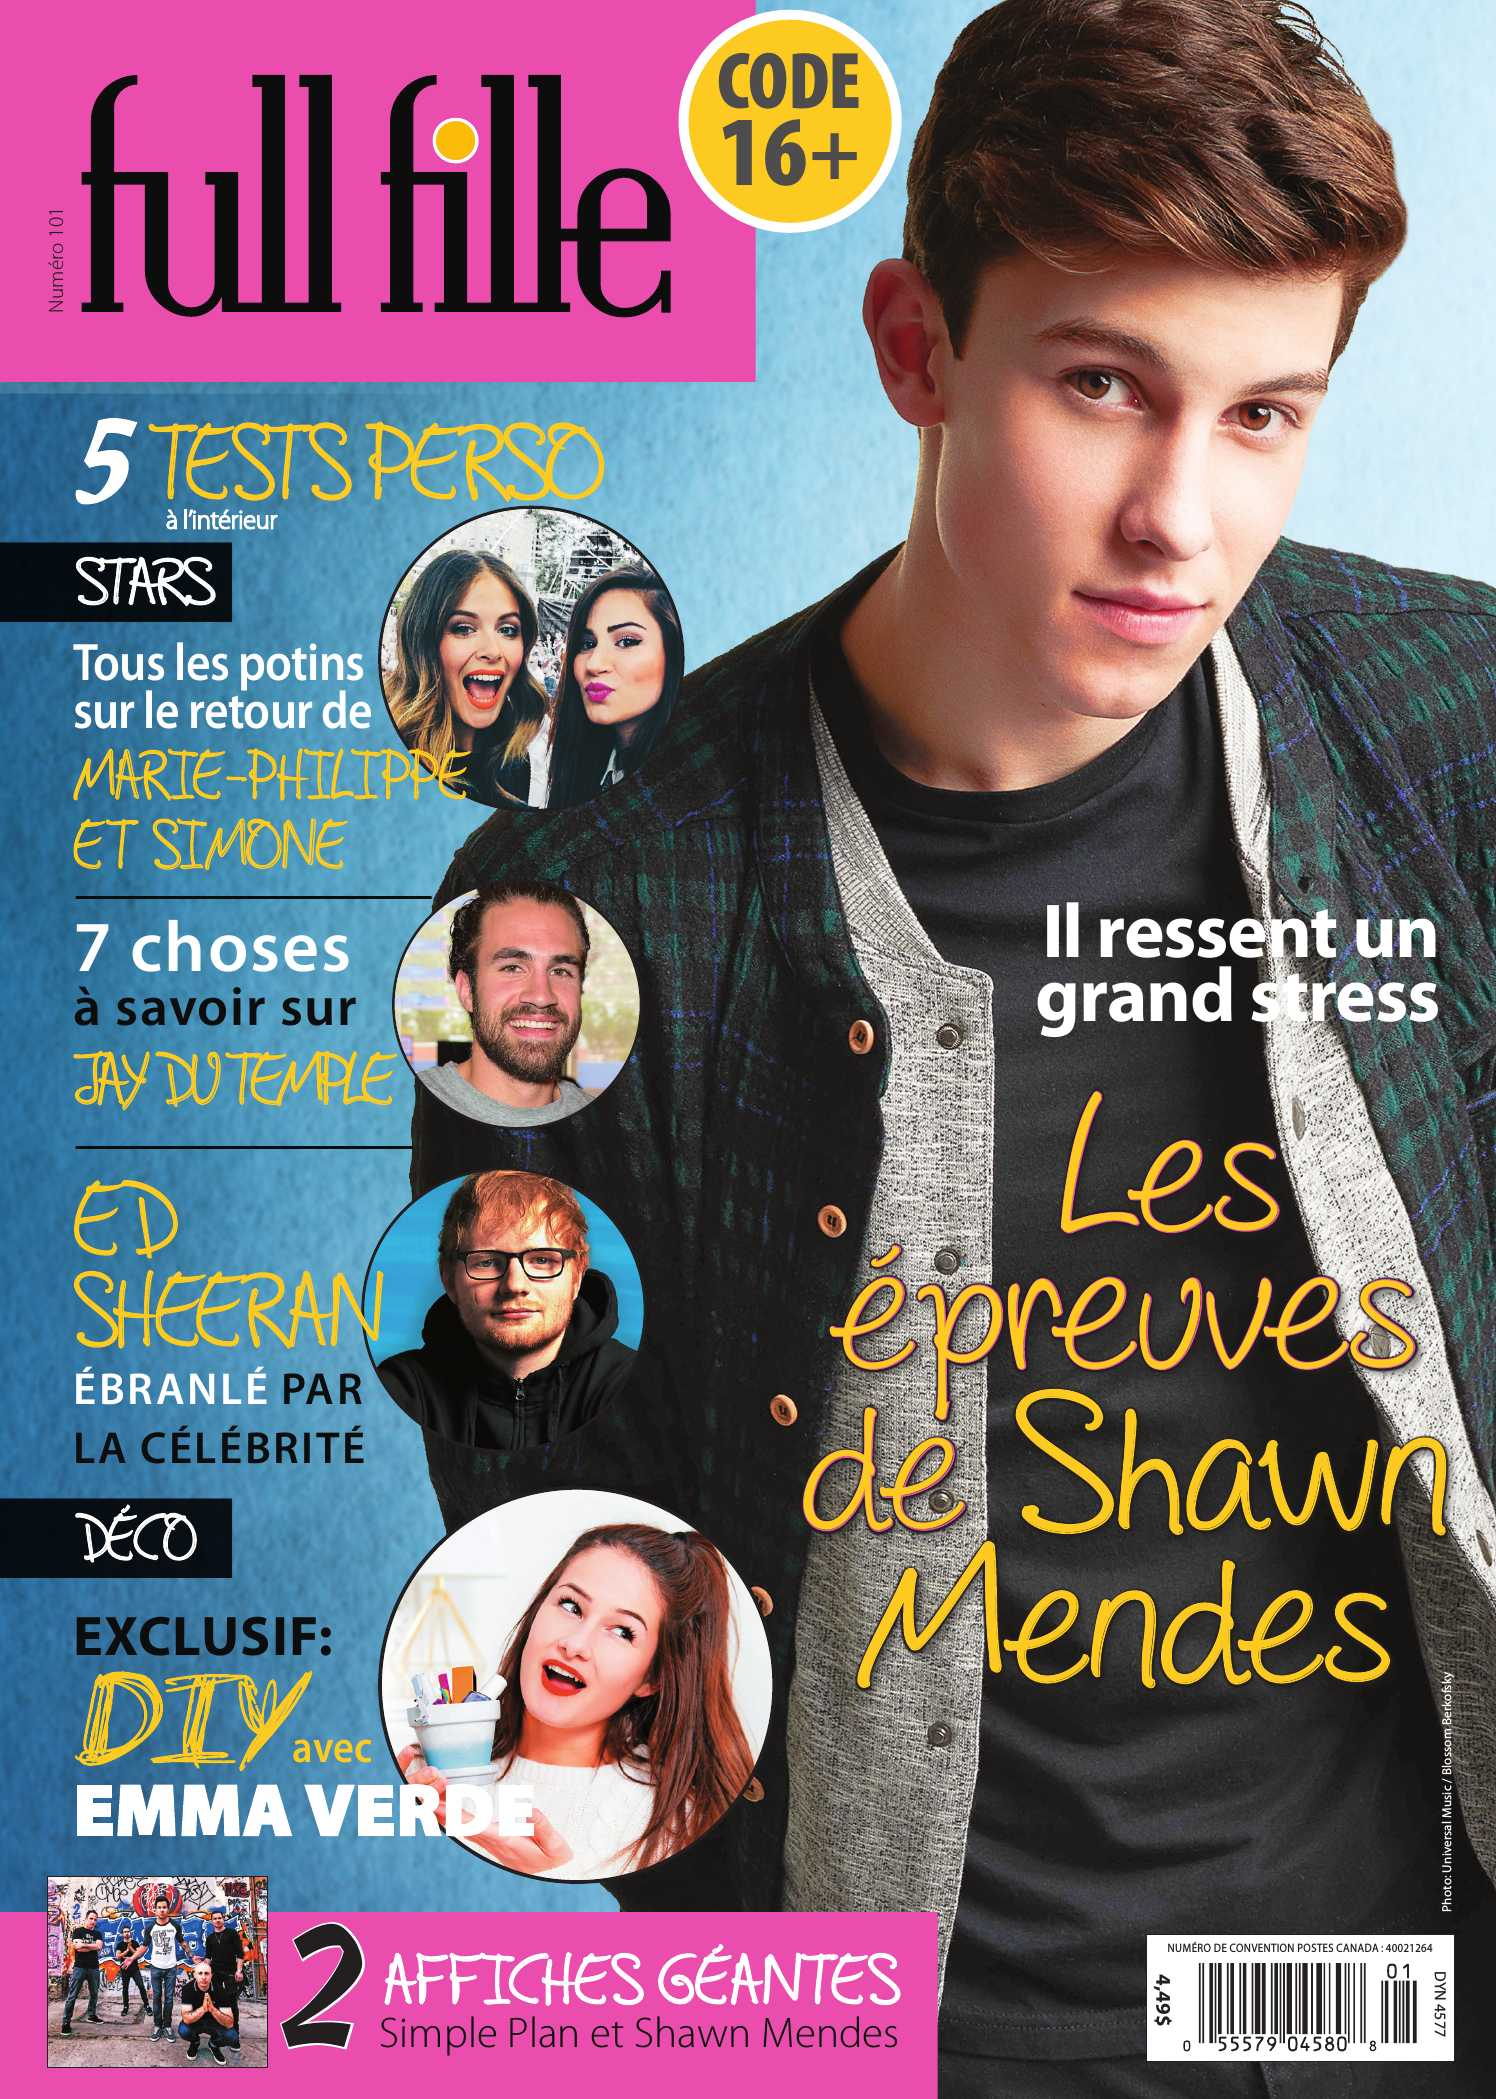 Couverture FULL FILLE 0101 magenligne.com Shawn Mendes